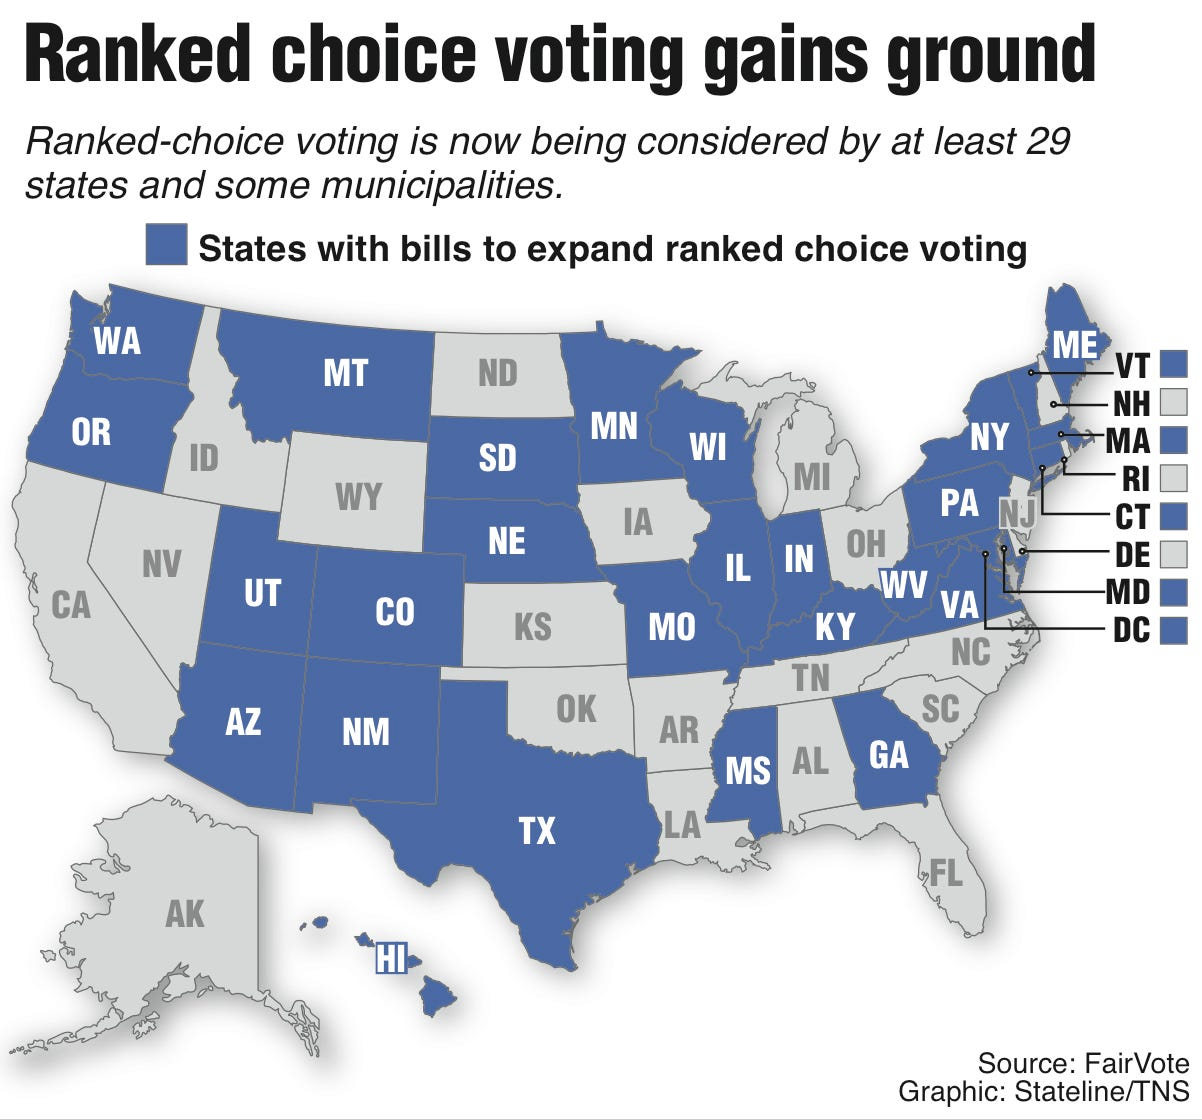 Ranked-choice voting gains momentum nationwide 3